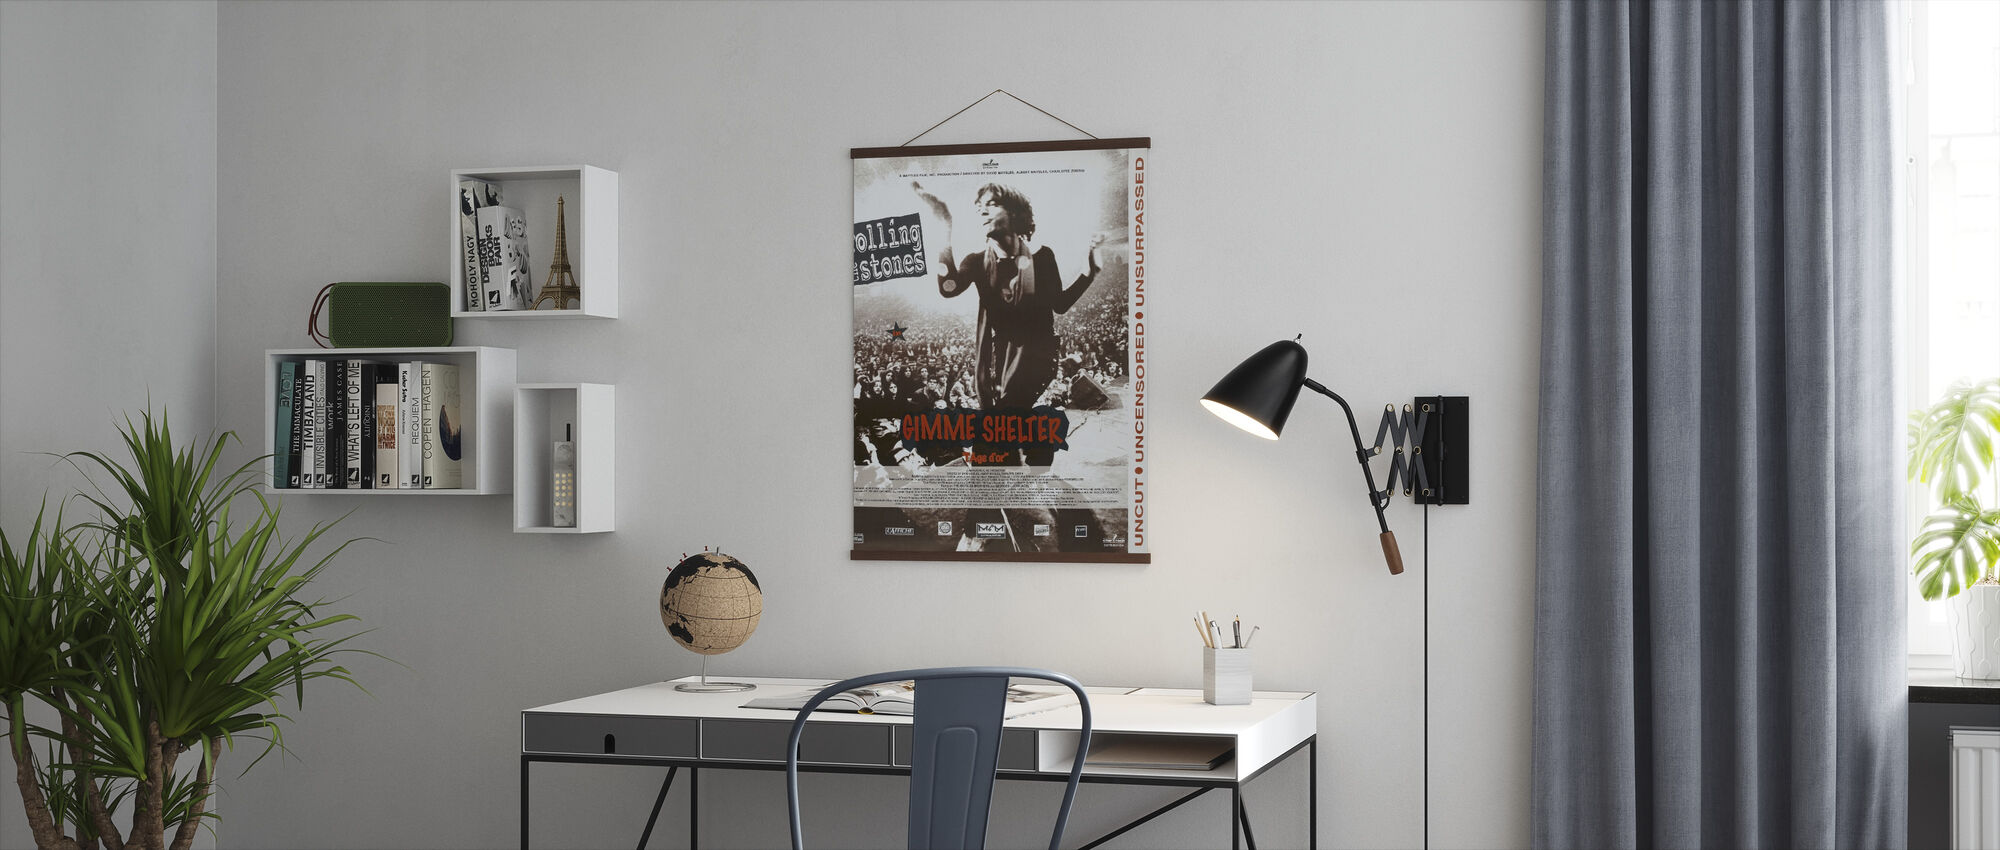 Gimme Shelter - Poster - Office